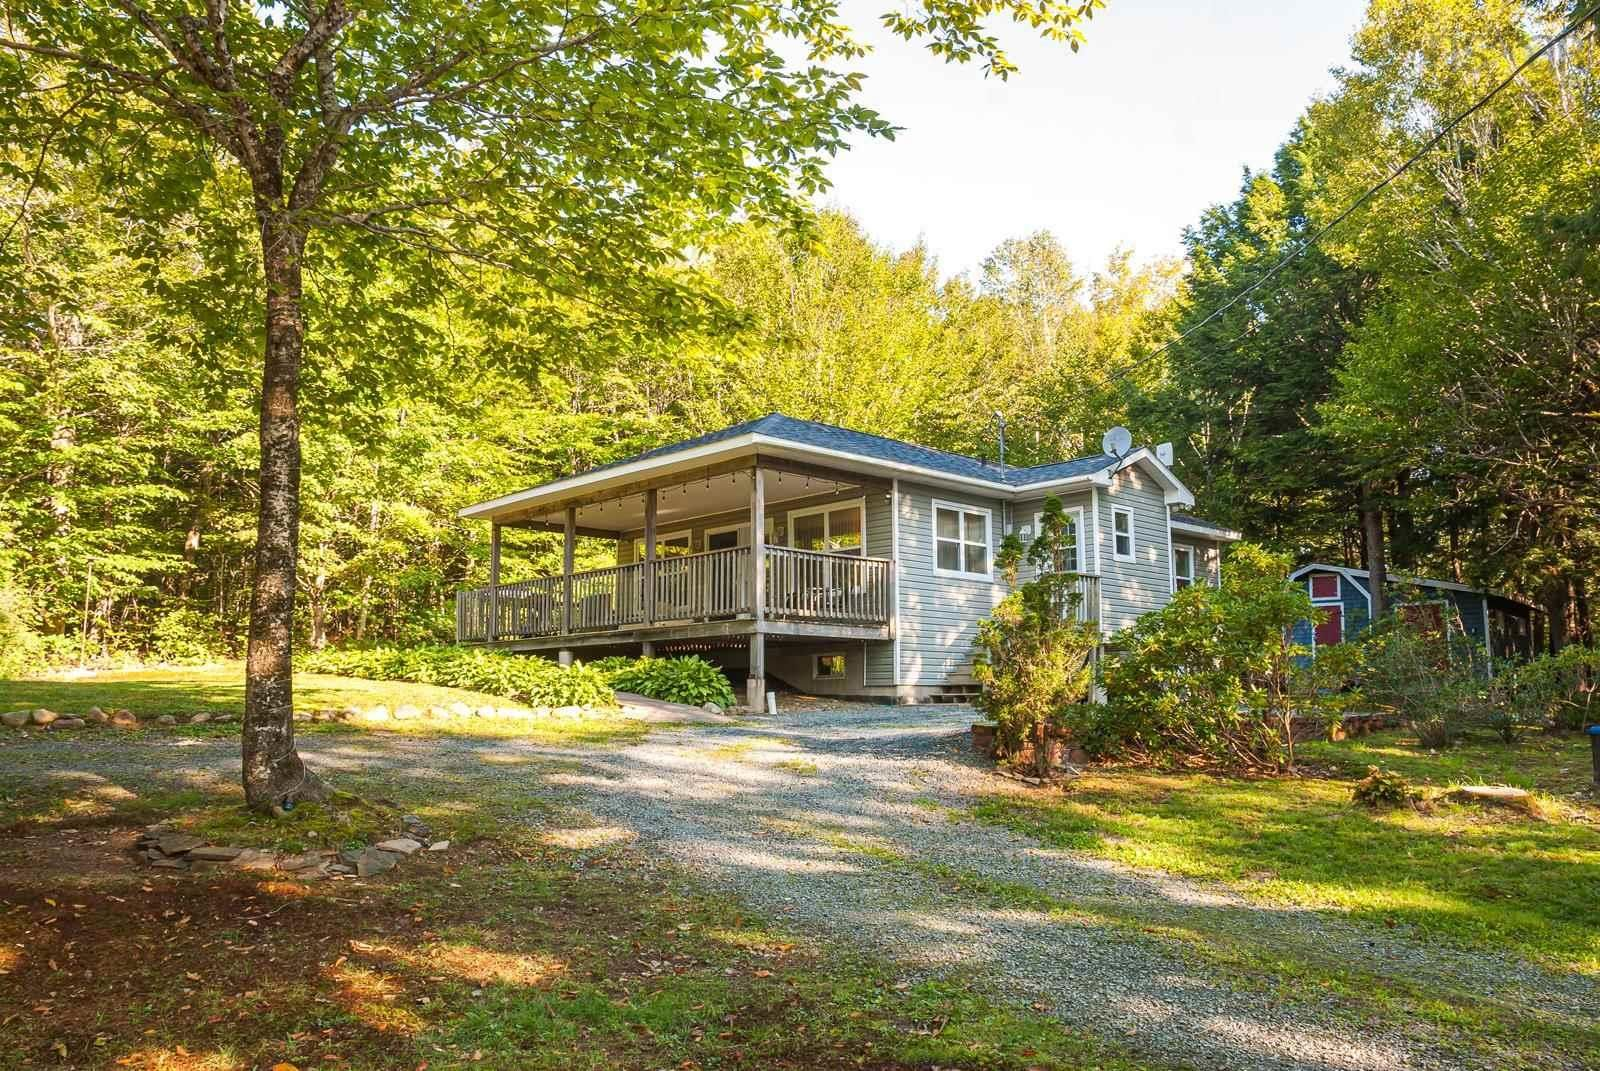 Main Photo: 28 BEECHWOOD Drive in Conquerall Mills: 405-Lunenburg County Residential for sale (South Shore)  : MLS®# 202124292